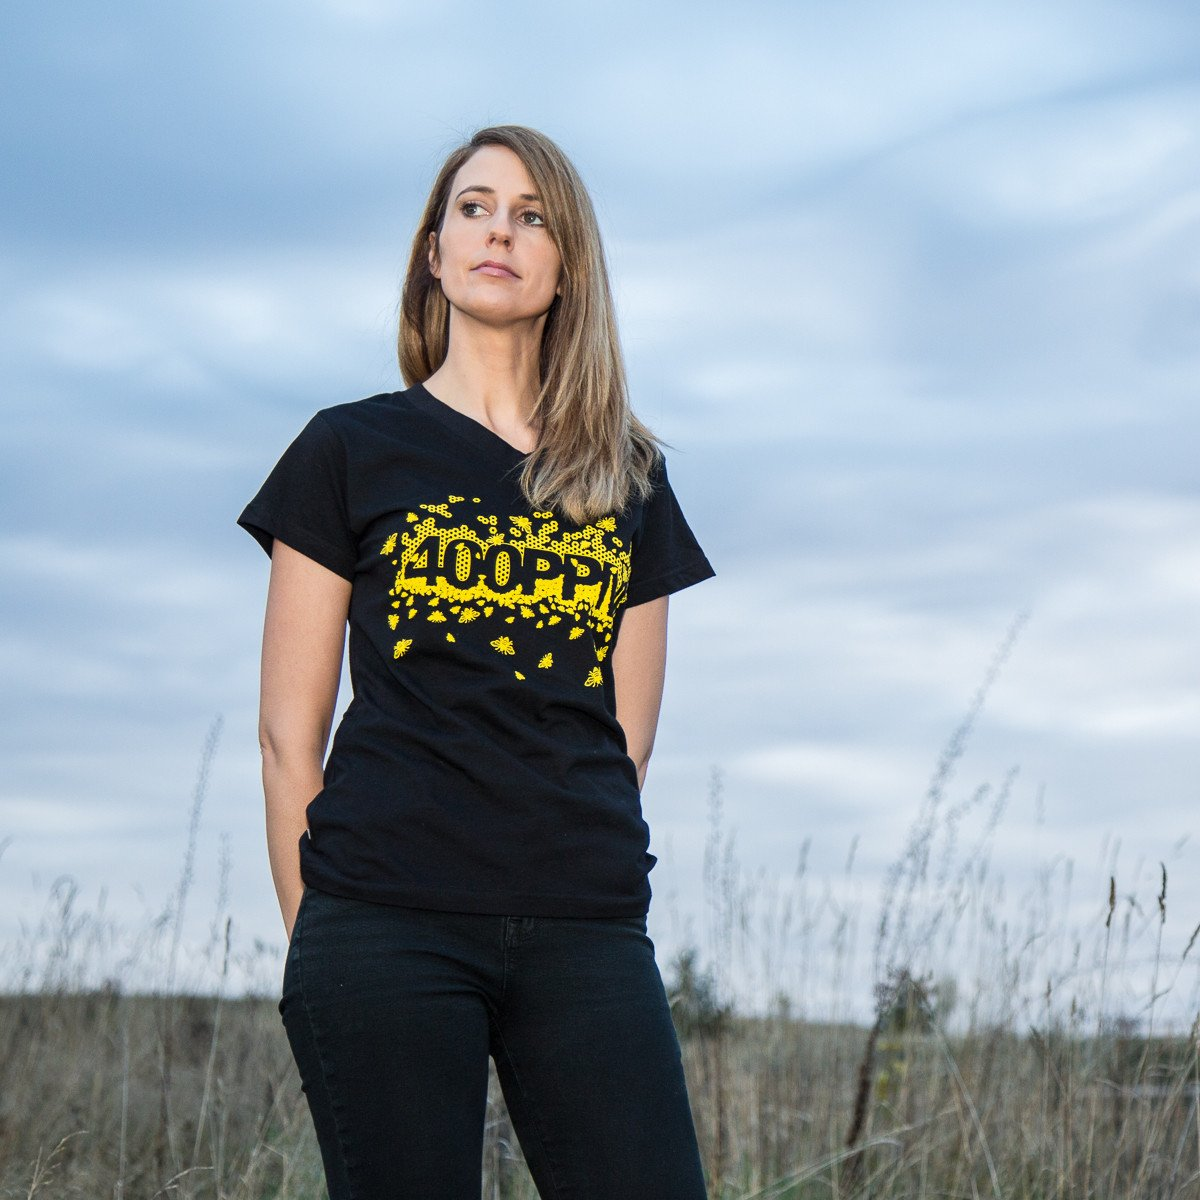 Women's 400 PPM Bee Tee - Black Apparel - Looptworks